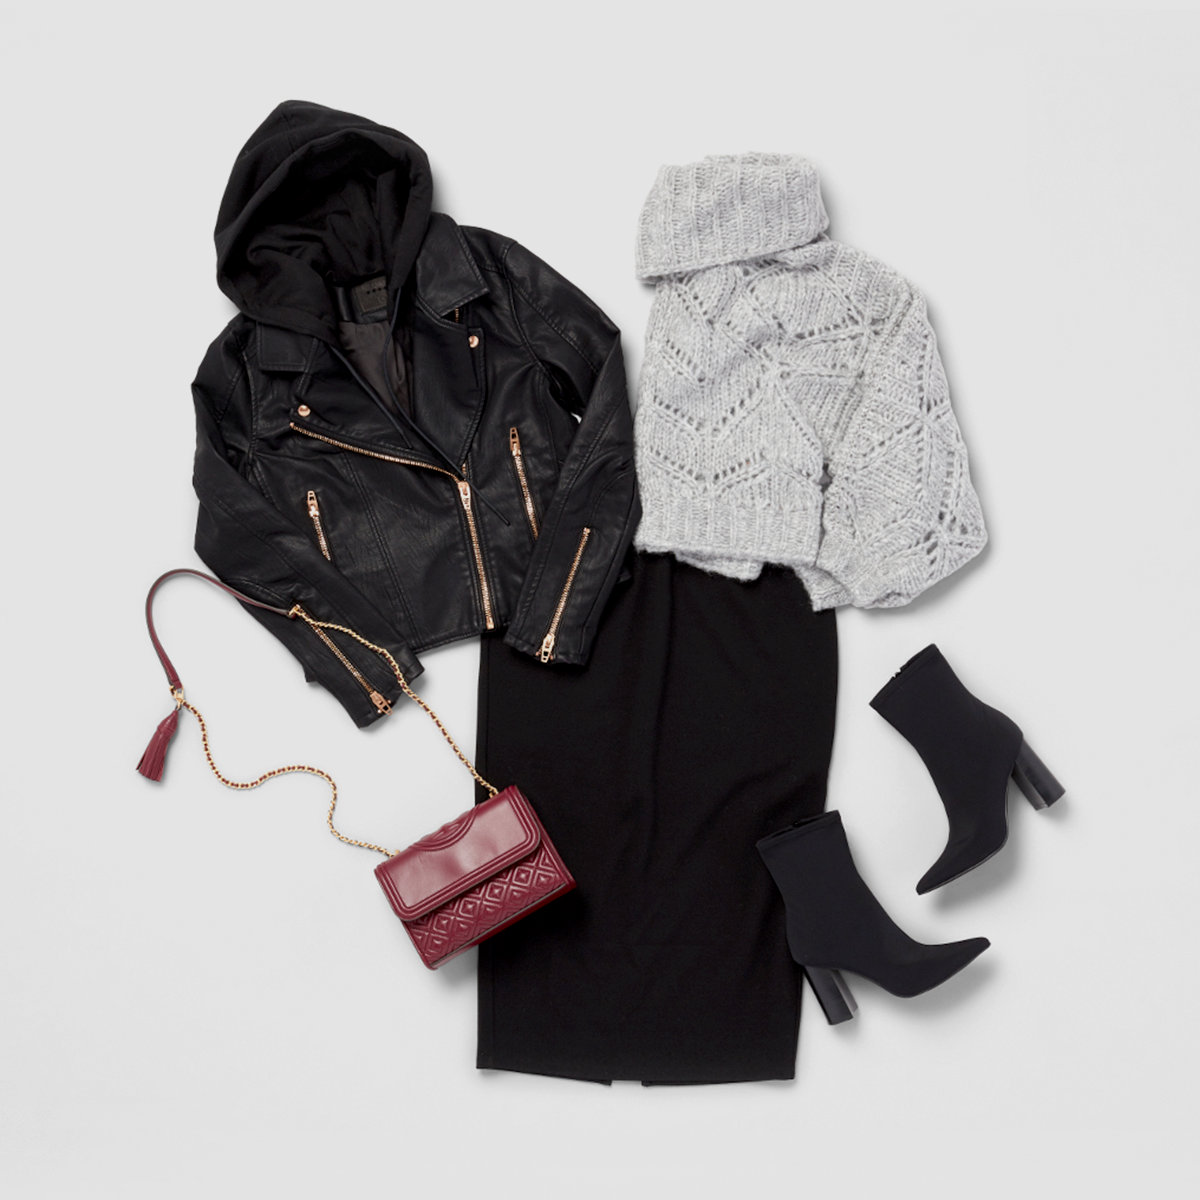 Women's outfit featuring a grey cowl-neck wool sweater.